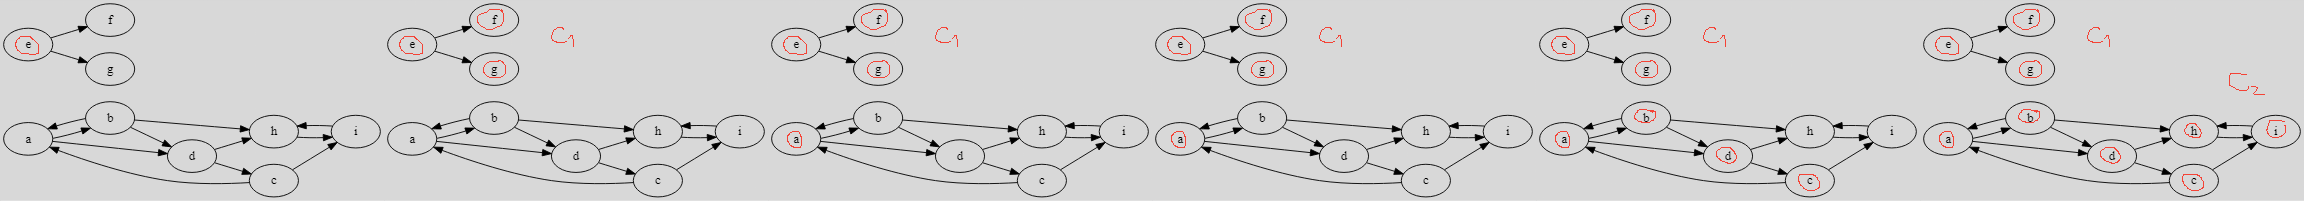 Example 1 - connected algorithm